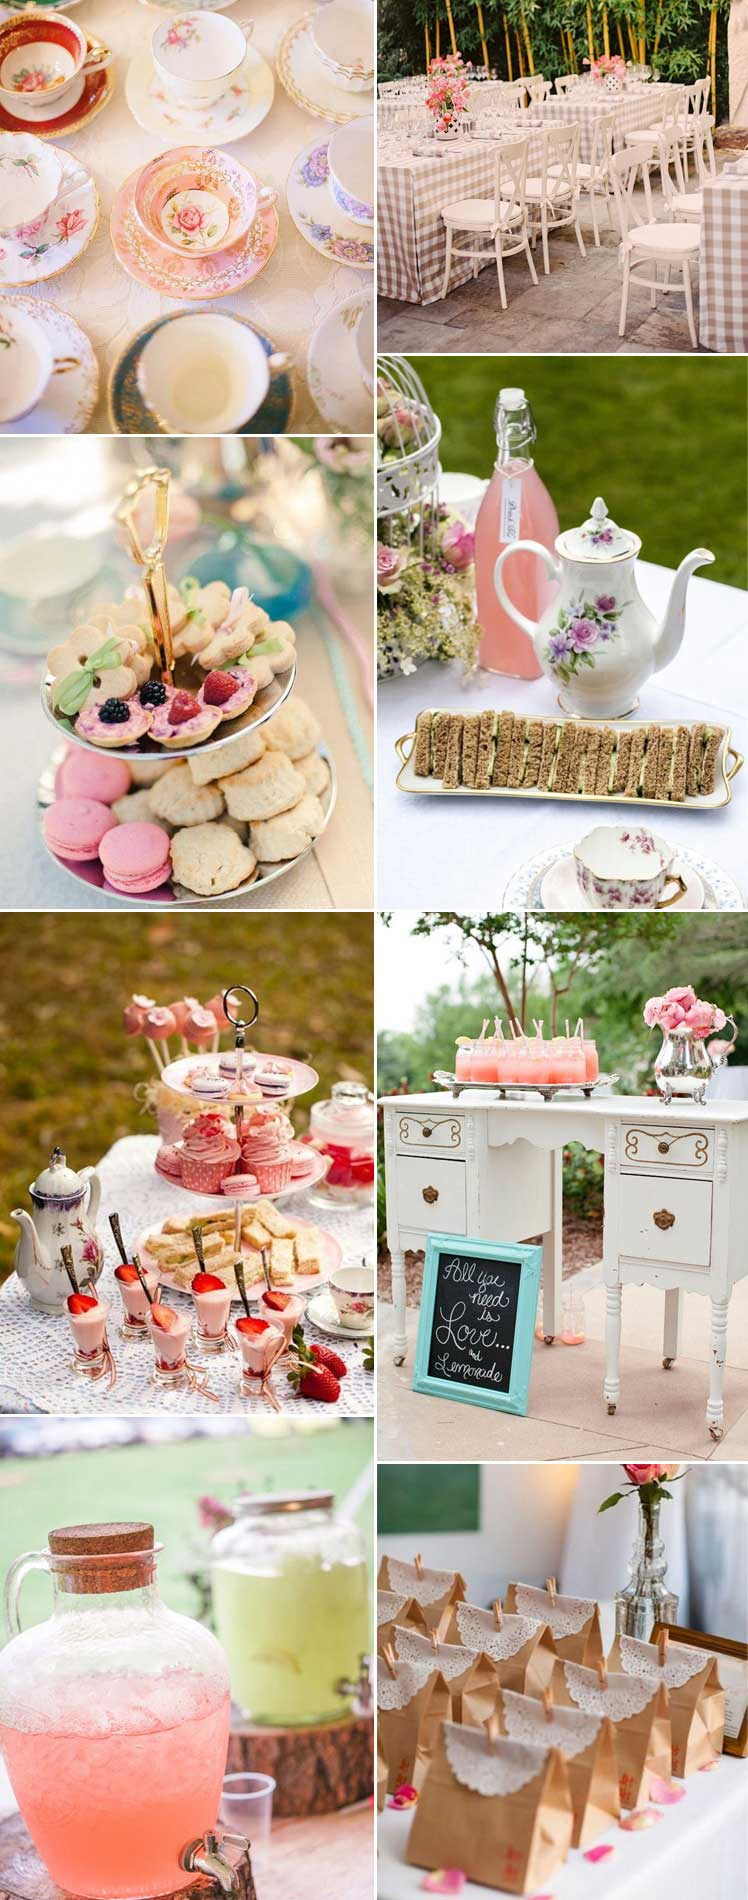 gorgeous inspiration for a vintage tea party